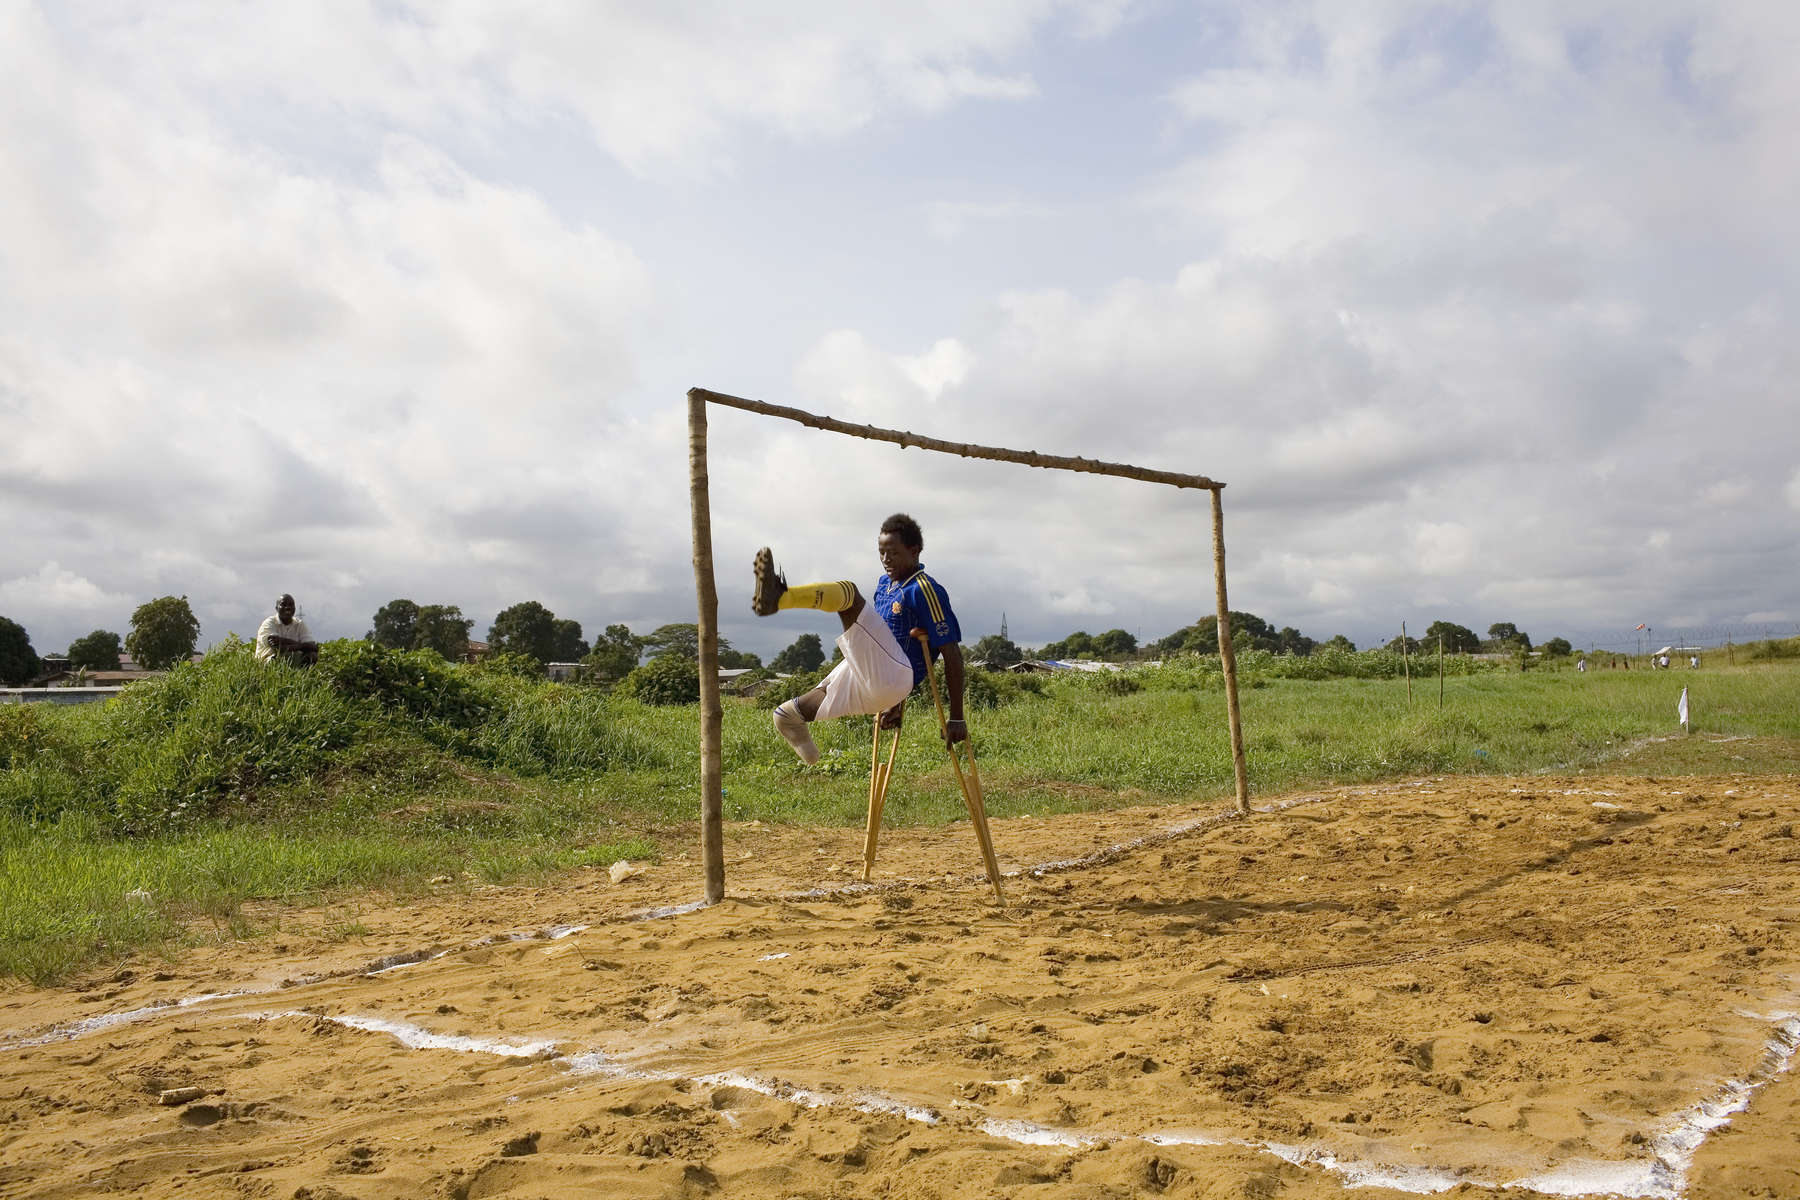 An amputee exercises on a pitch modified for amputee matches. The goal is half the size of the orthodox version.In disaster areas, war zones and urban wastelands, football keeps humanity alive. It brings nations together and promotes unity. It encourages equality and generates pride and self-belief. It has the power to heal and to help, to motivate, to give freedom to dreams and empower a generation. There are millions of people playing the game or helping it to flourish who find that football brings a positive dimension to their lives.Away from the billionaire owned clubs with it's multi-million dollar players, Football's Hidden Story is a series of emotive human interest photographs showing the positive impact football has had at grassroot level on individuals and communities all around the world.